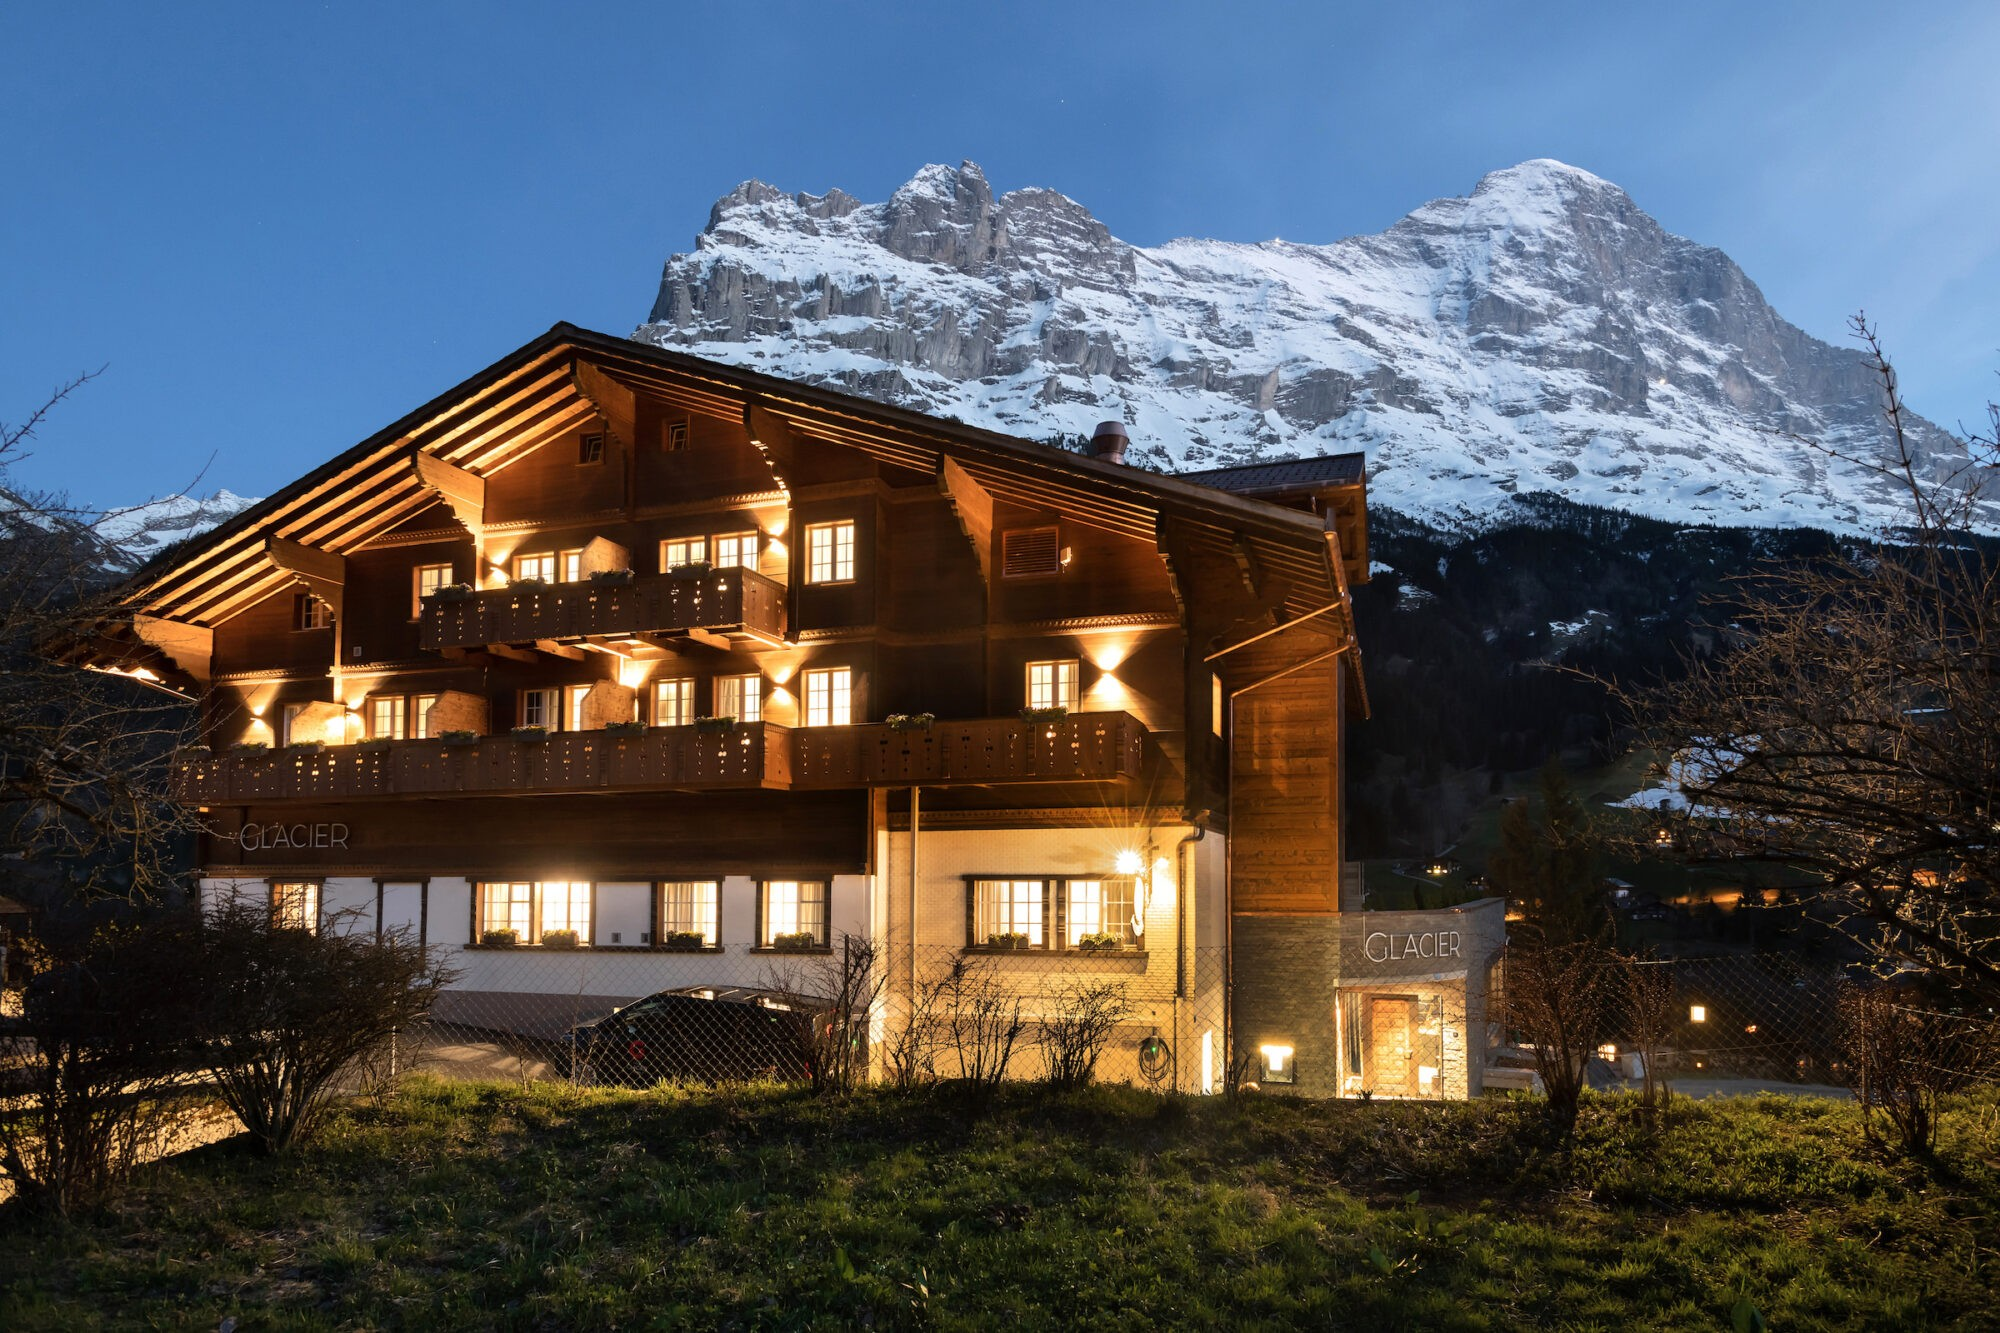 Boutique Hotel and Restaurant Glacier Grindelwald